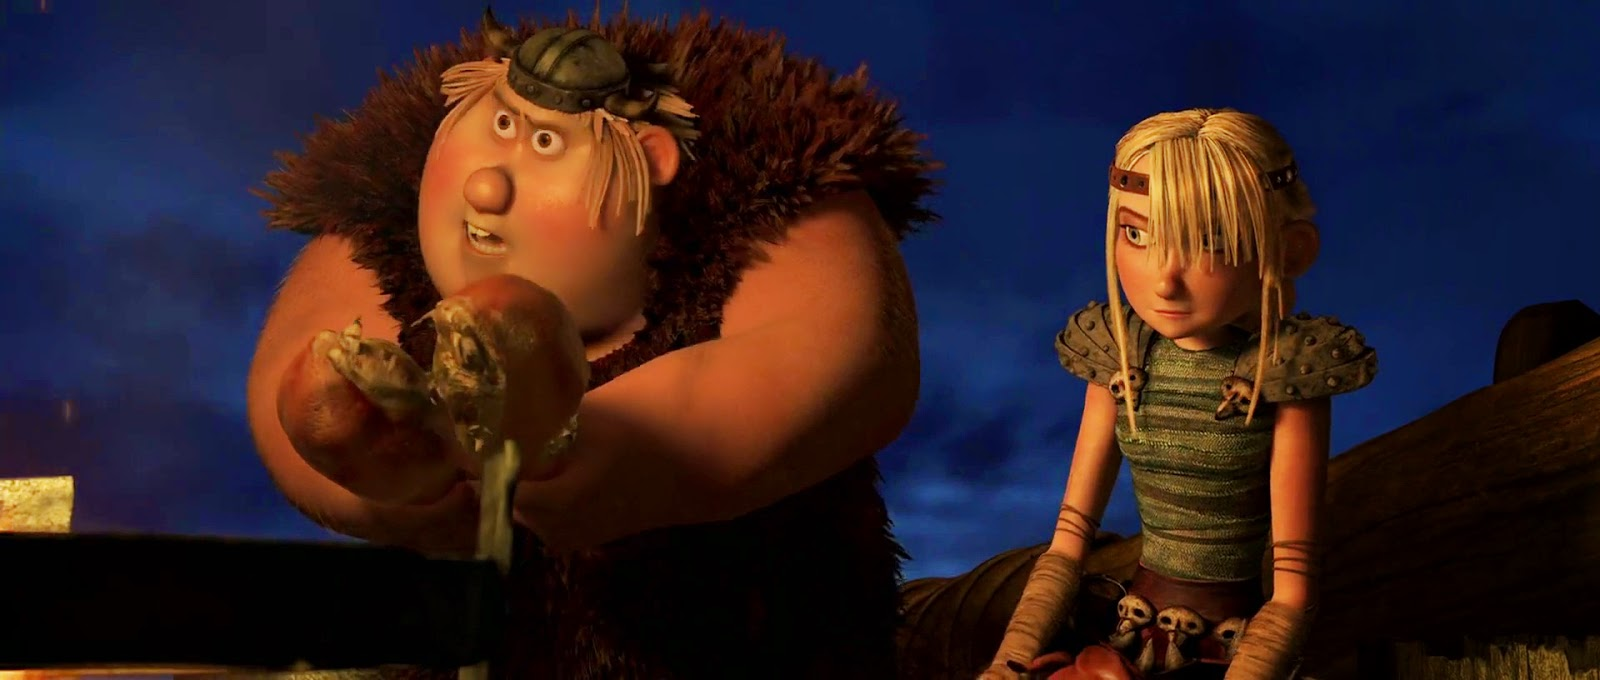 How to Train Your Dragon (2010) S4 s How to Train Your Dragon (2010)